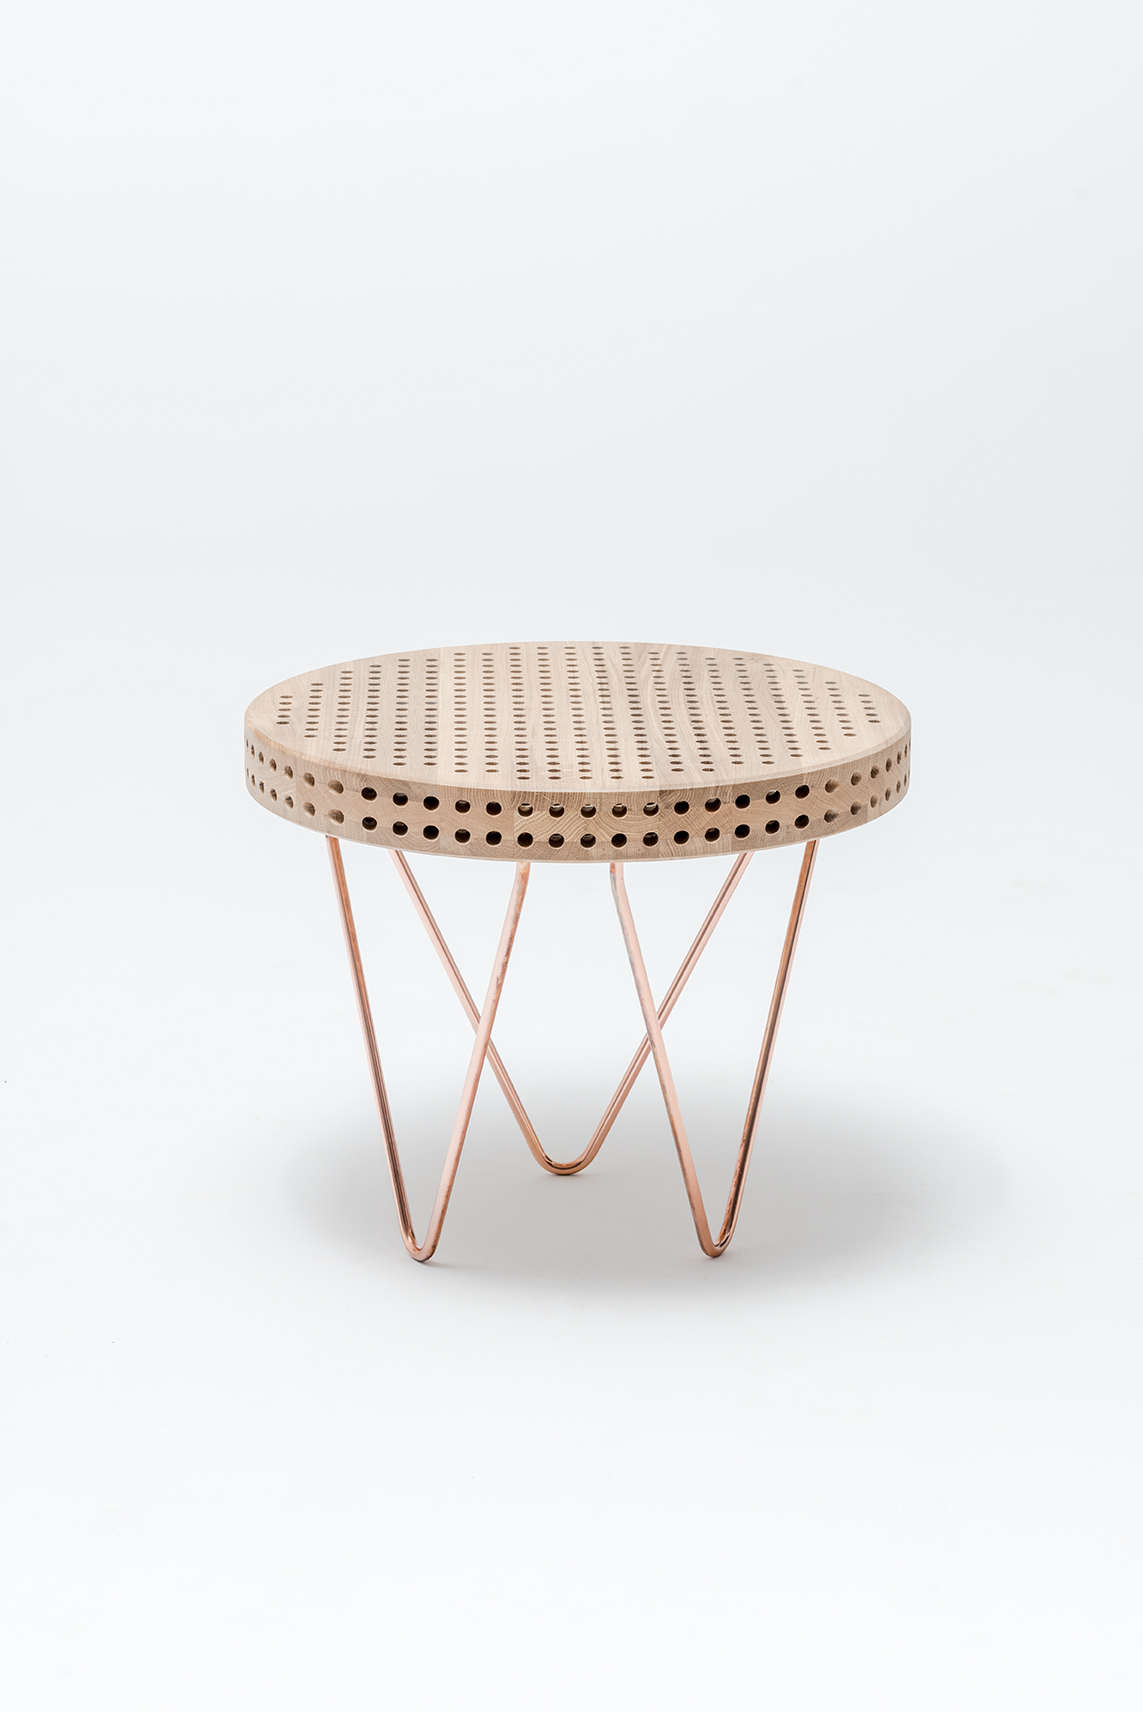 reaktor-side-table-swallow-tail-furniture